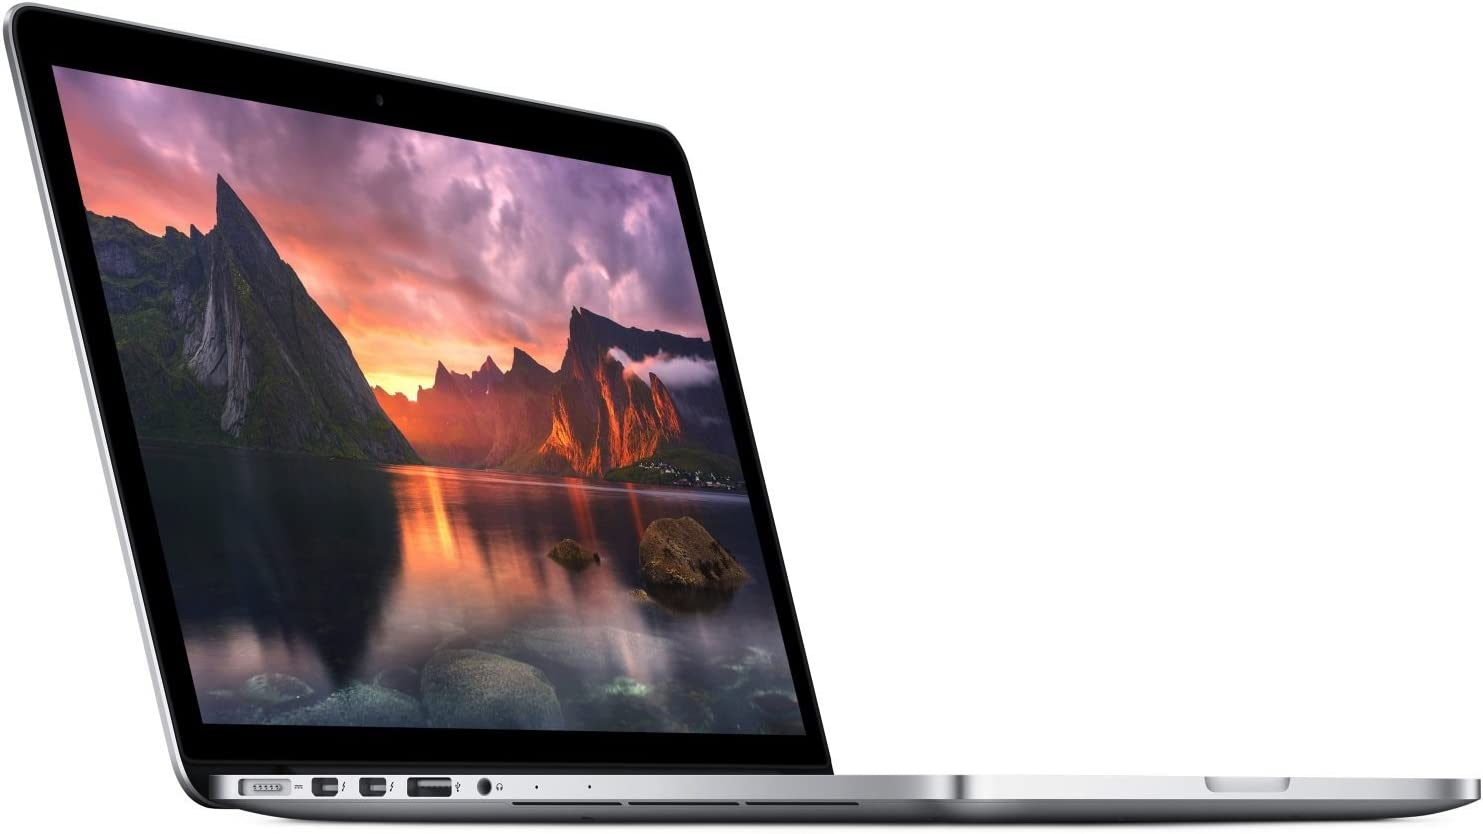 Apple MacBook Pro ME866LL/A 13.3-Inch Laptop with Retina Display (OLD VERSION) (Renewed)